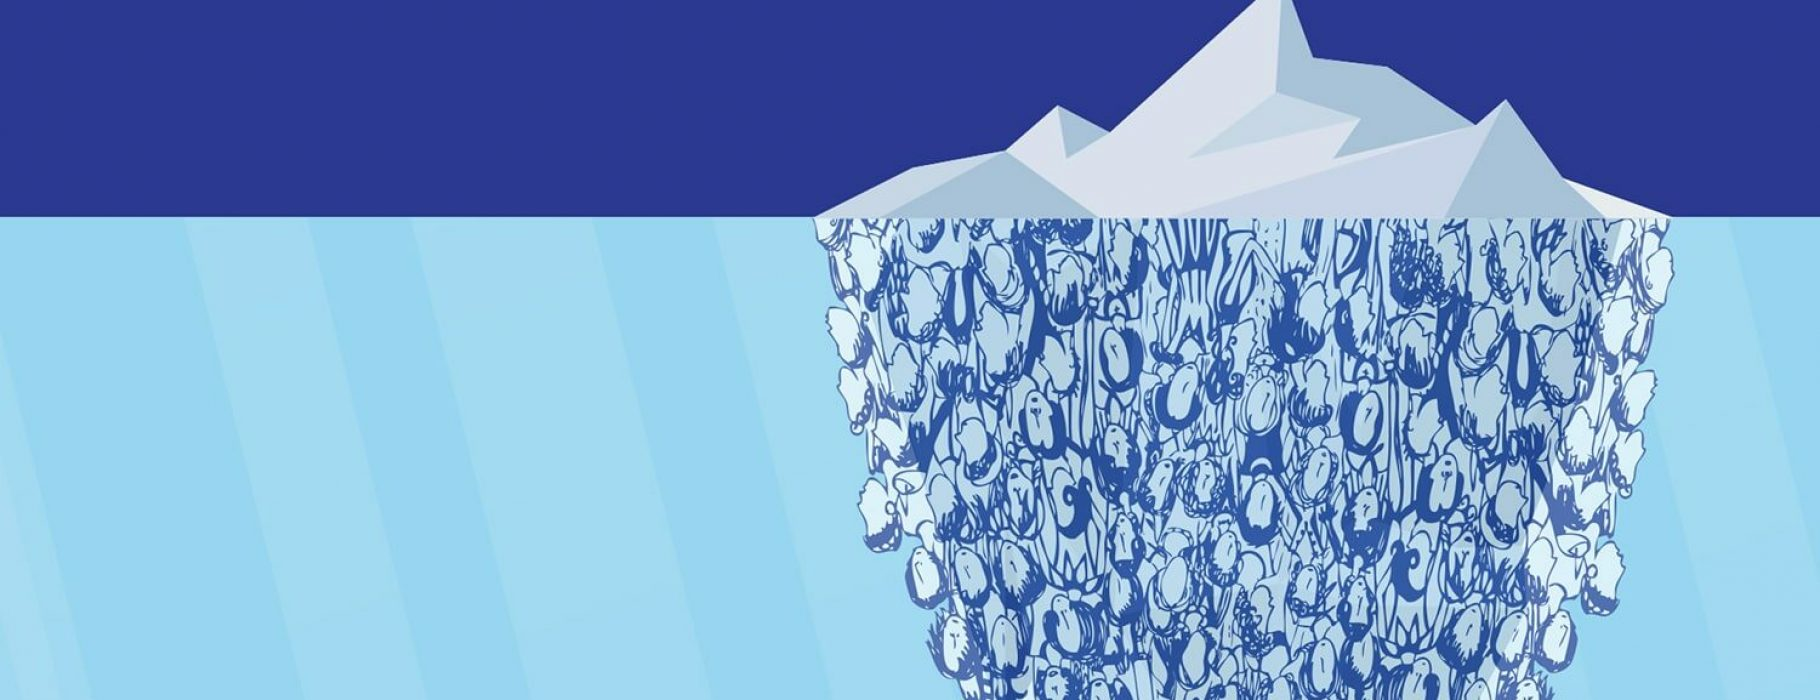 An illustrated side view of an iceberg, where the portion above the water is ice, and the portion below is made up of abstract illustrations of human faces.